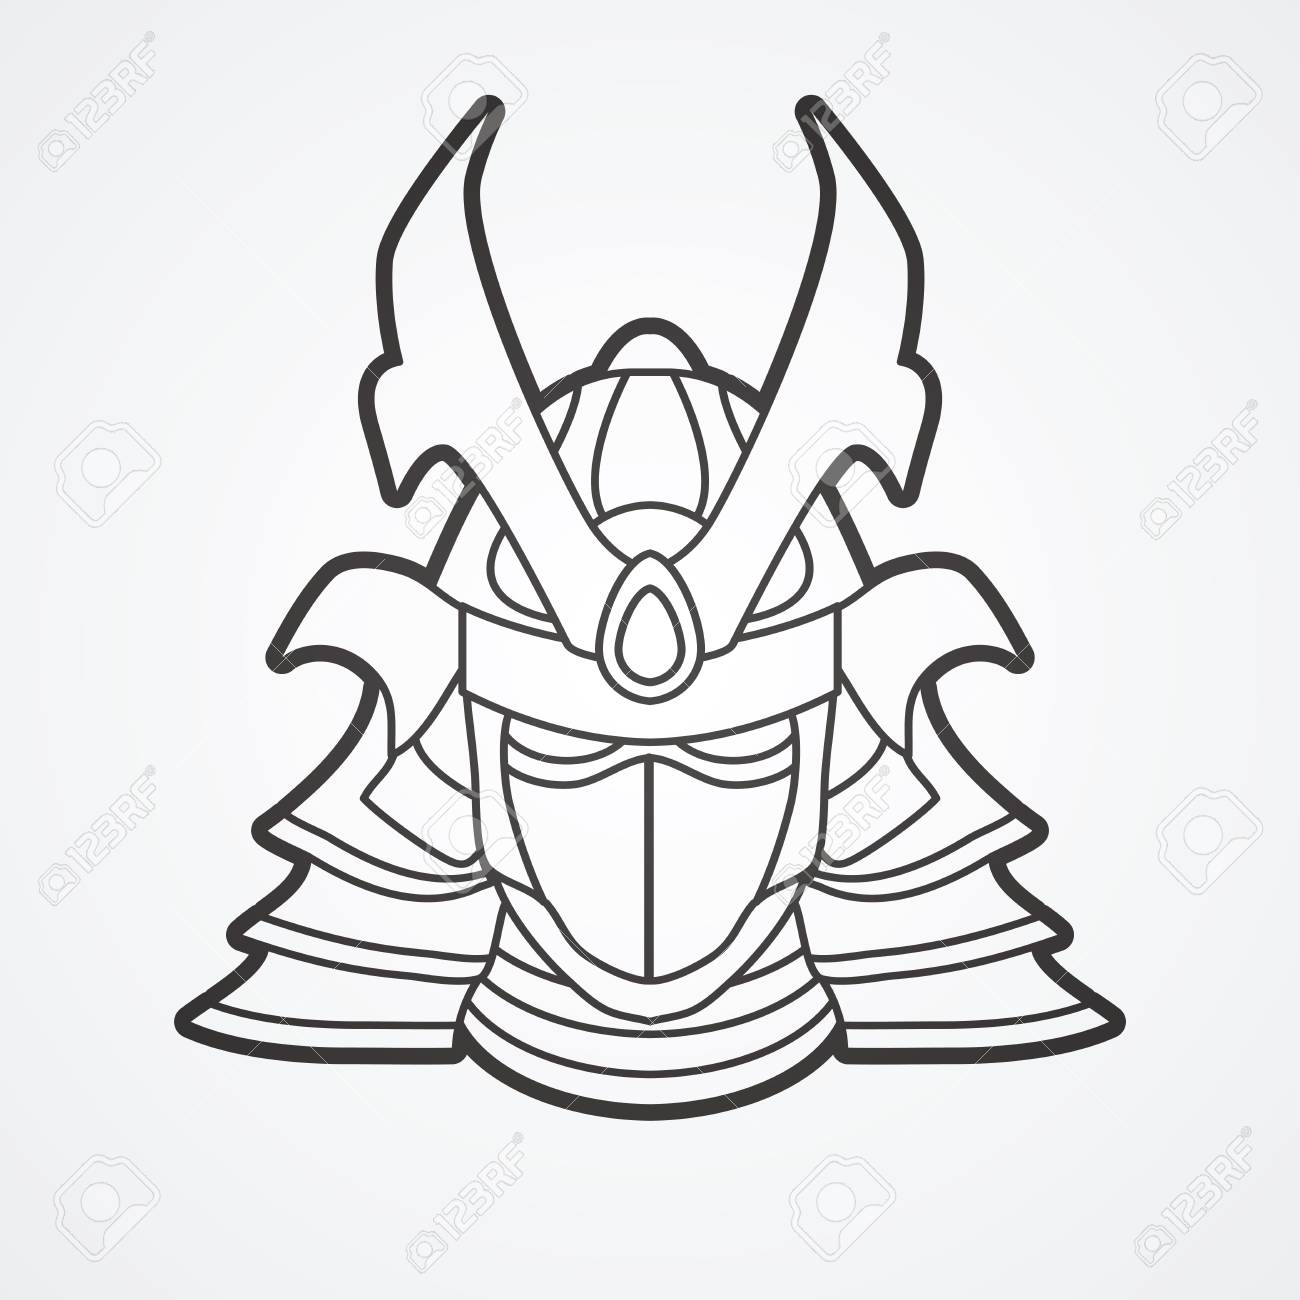 samurai mask outline graphic vector royalty free cliparts vectors